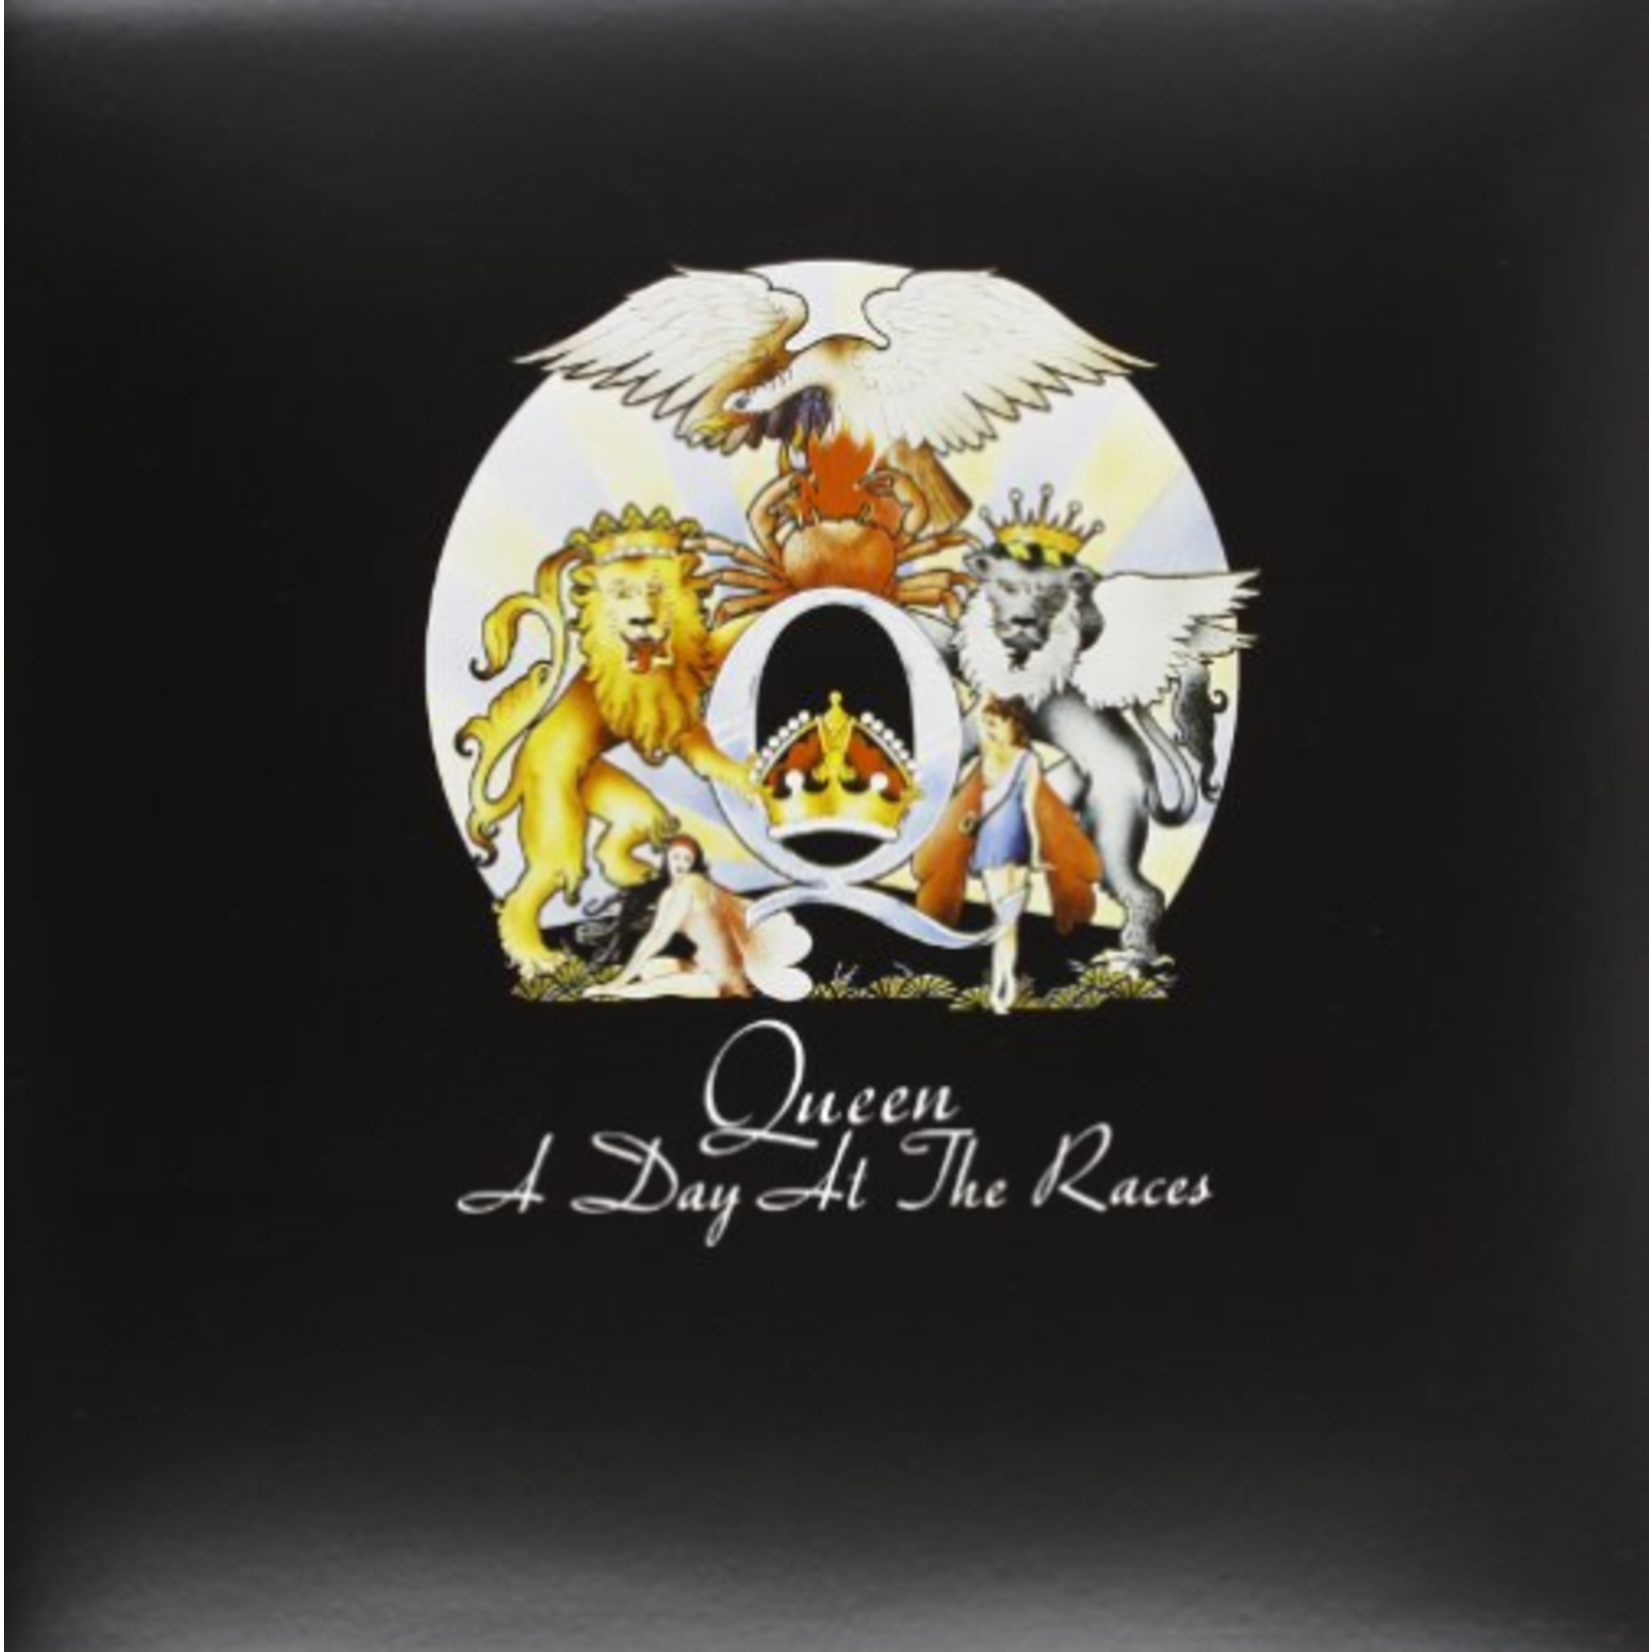 QUEEN A DAY AT THE RACES (LP)